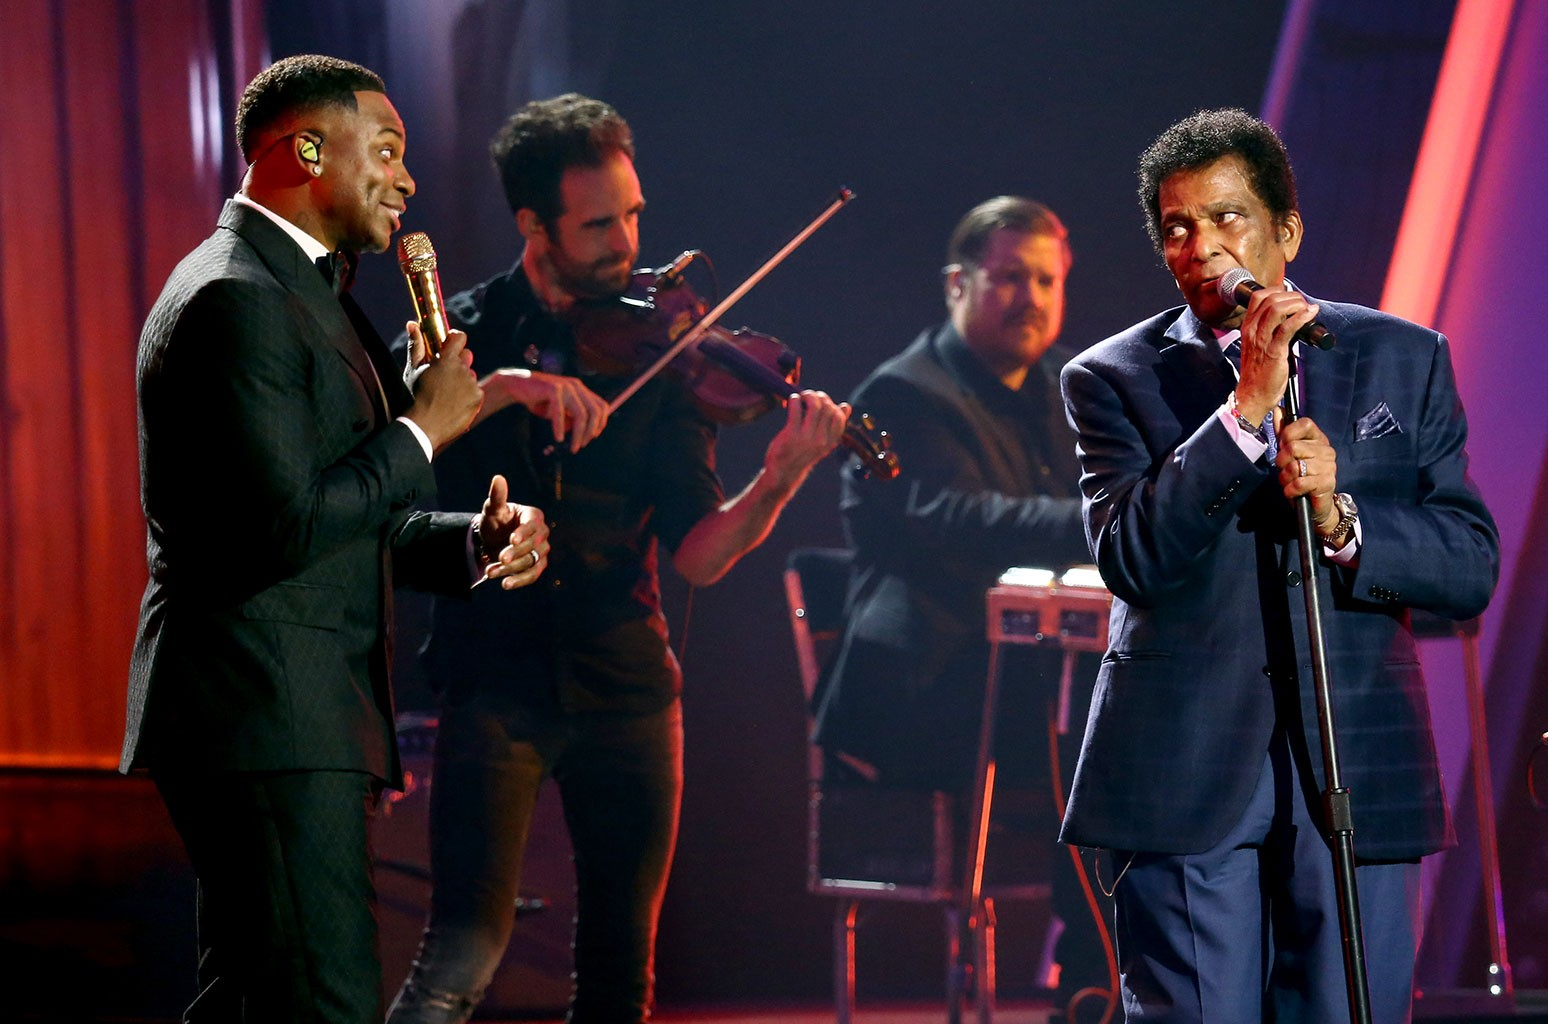 Jimmie Allen and Charley Pride